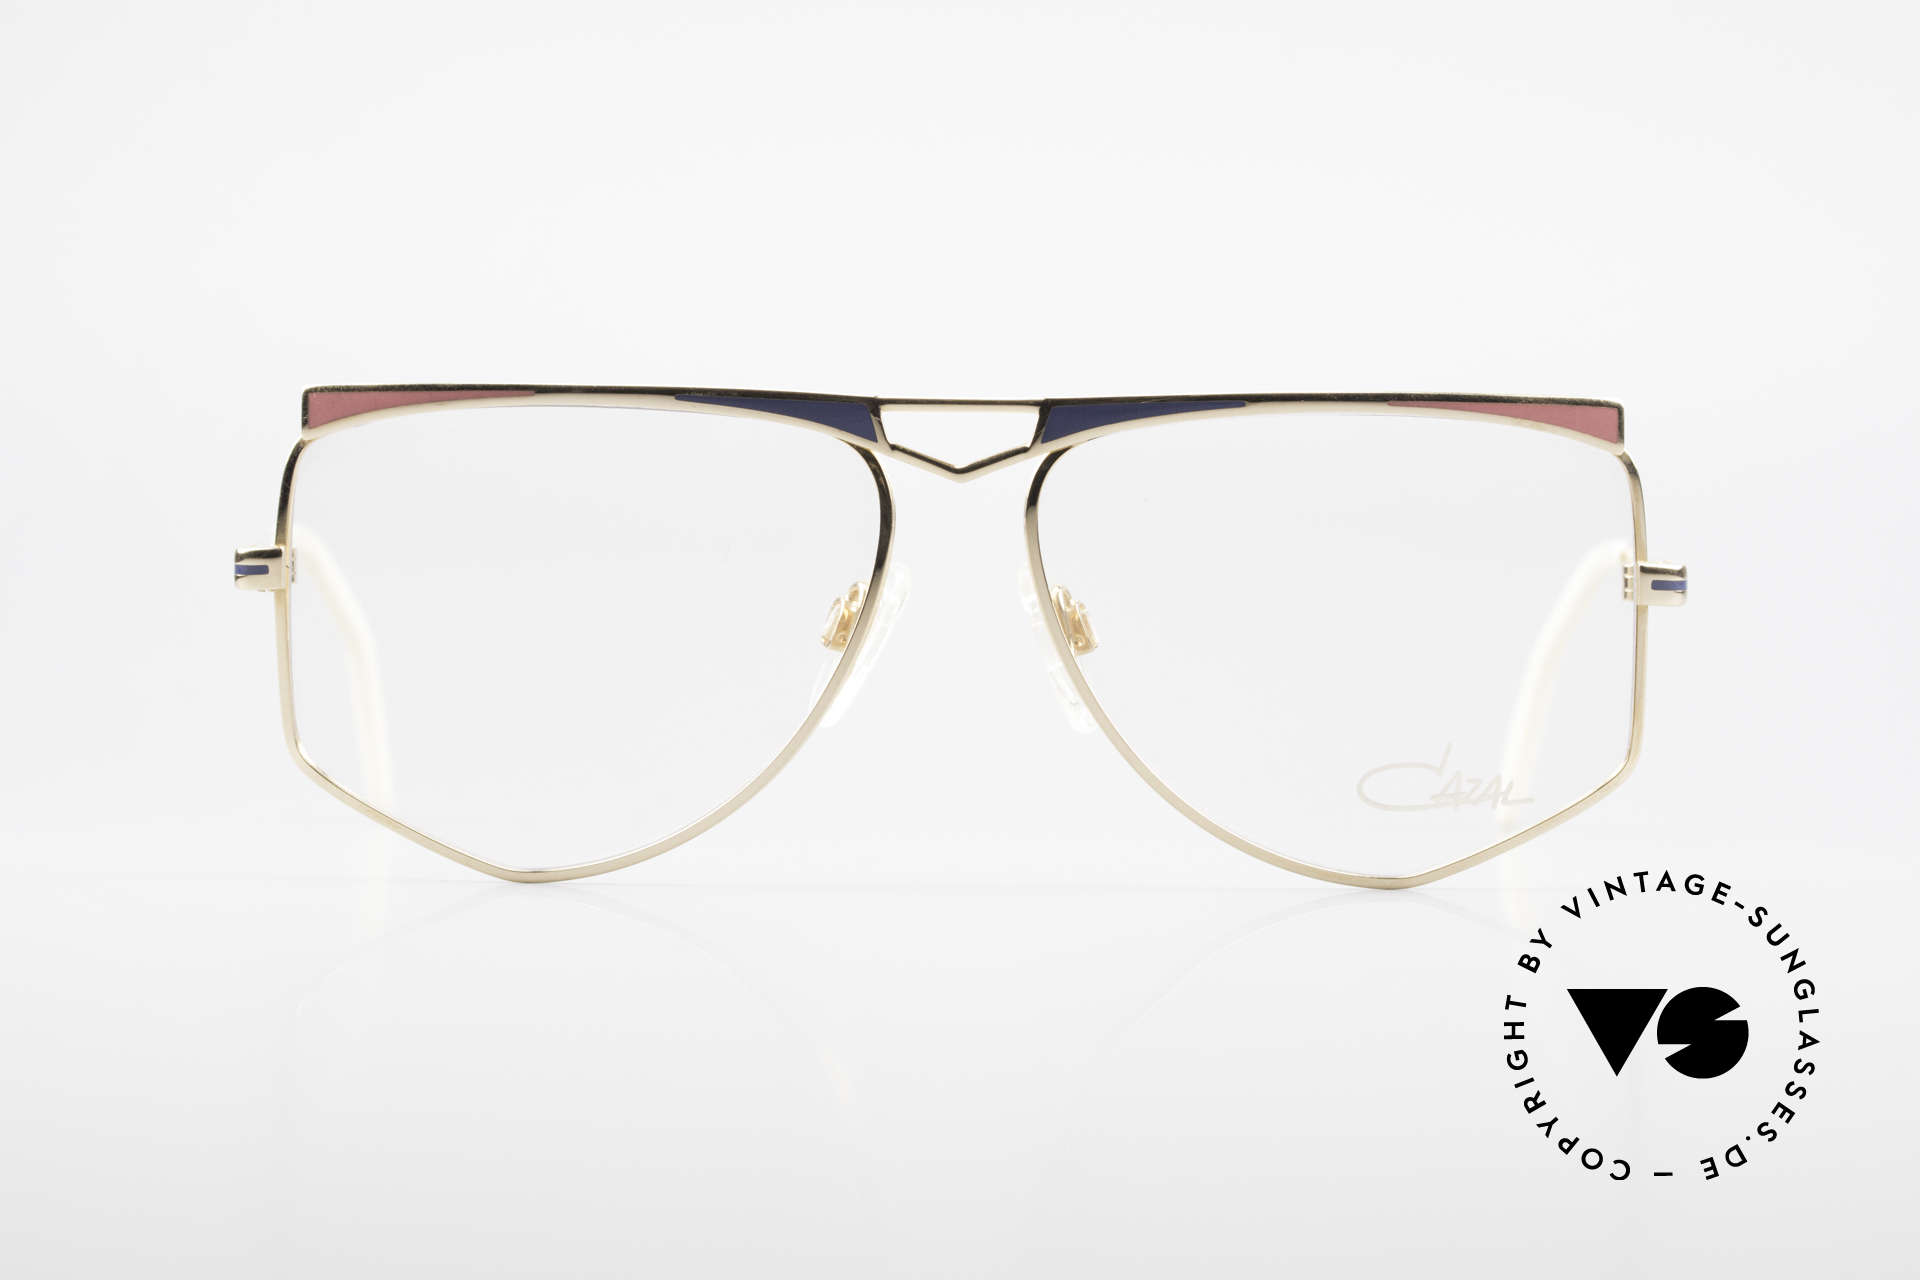 Cazal 227 True Old Vintage Eyeglasses, perfect matching frame coloring; typically 80's fashion, Made for Women